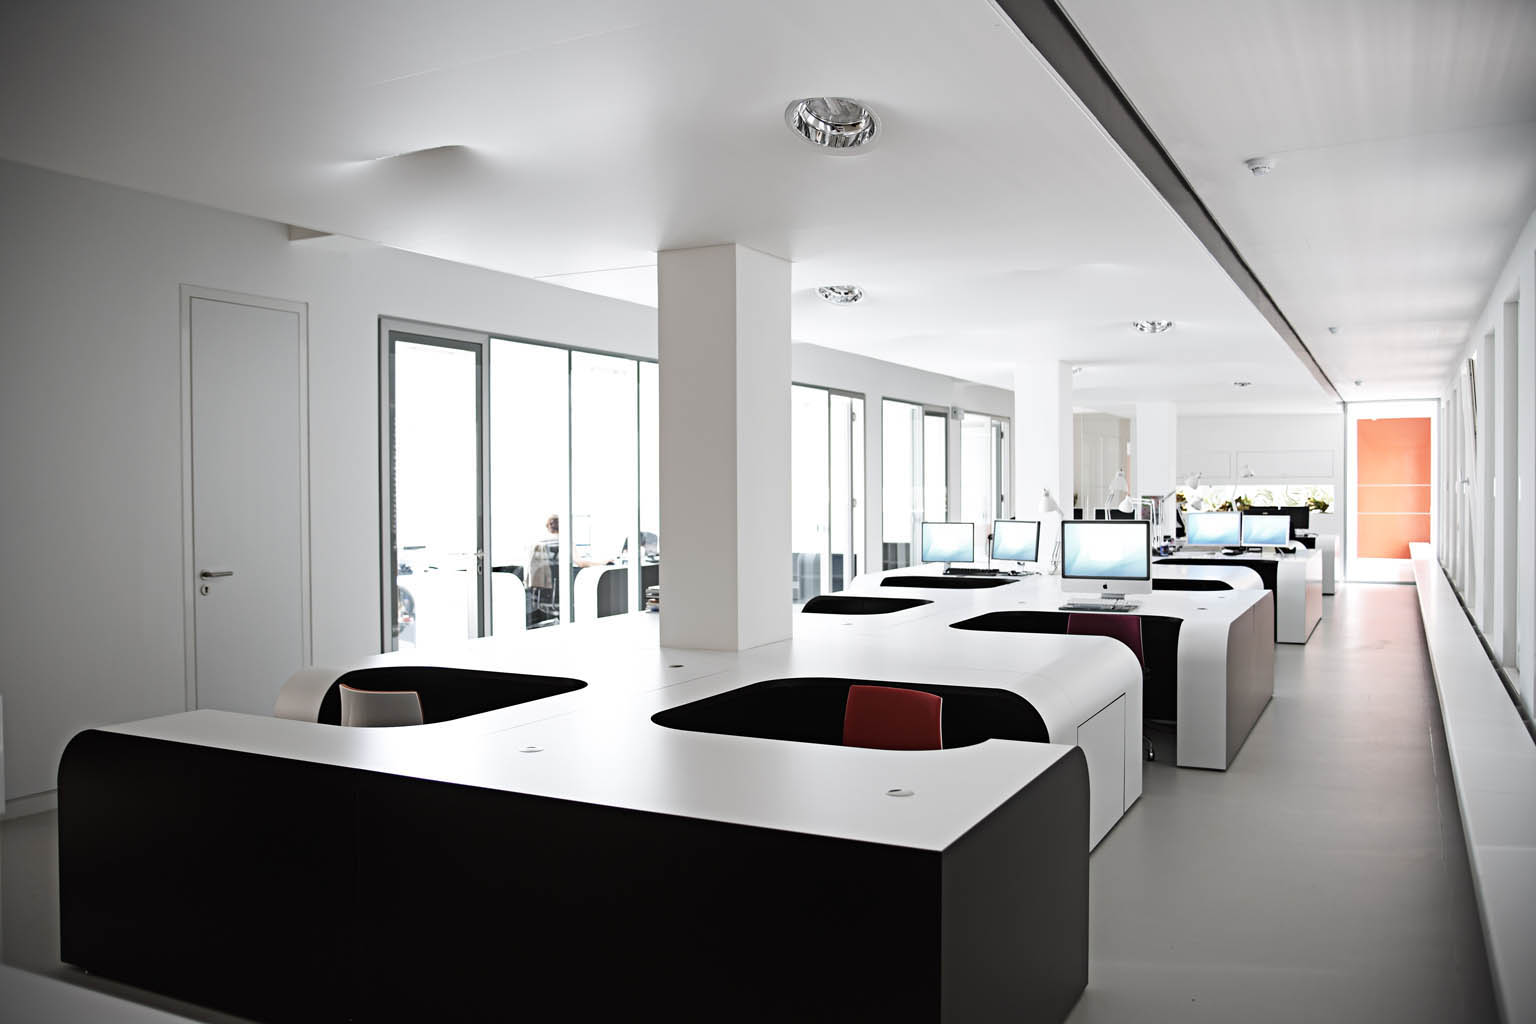 Eins Architekten office interior design syzygy expansion hamburg mitte eins